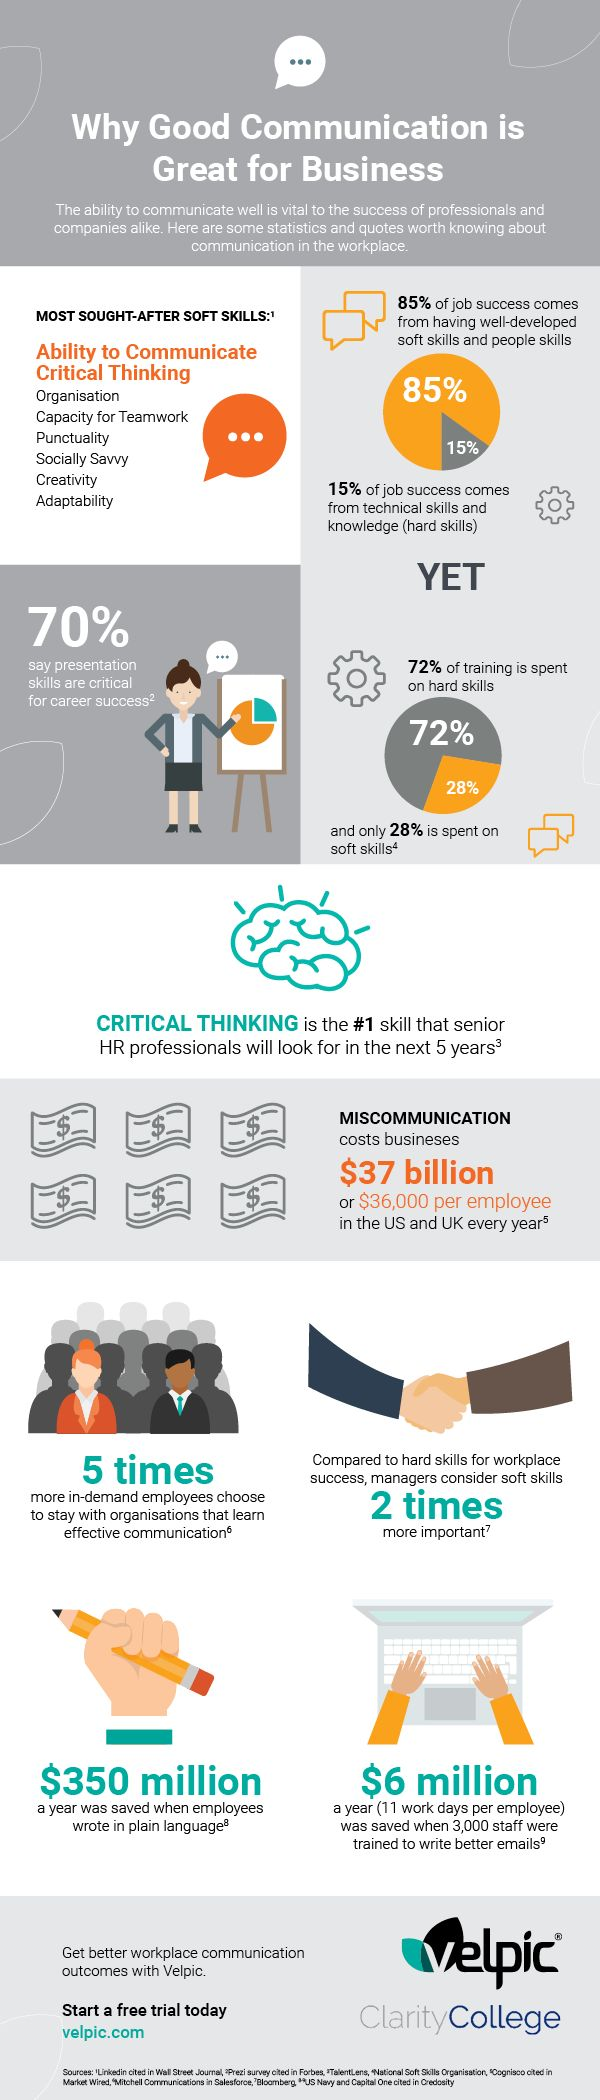 best ideas about good communication skills good the why good communication is great for business infographic provides a snapshot of facts and outcomes related to improving communication skills